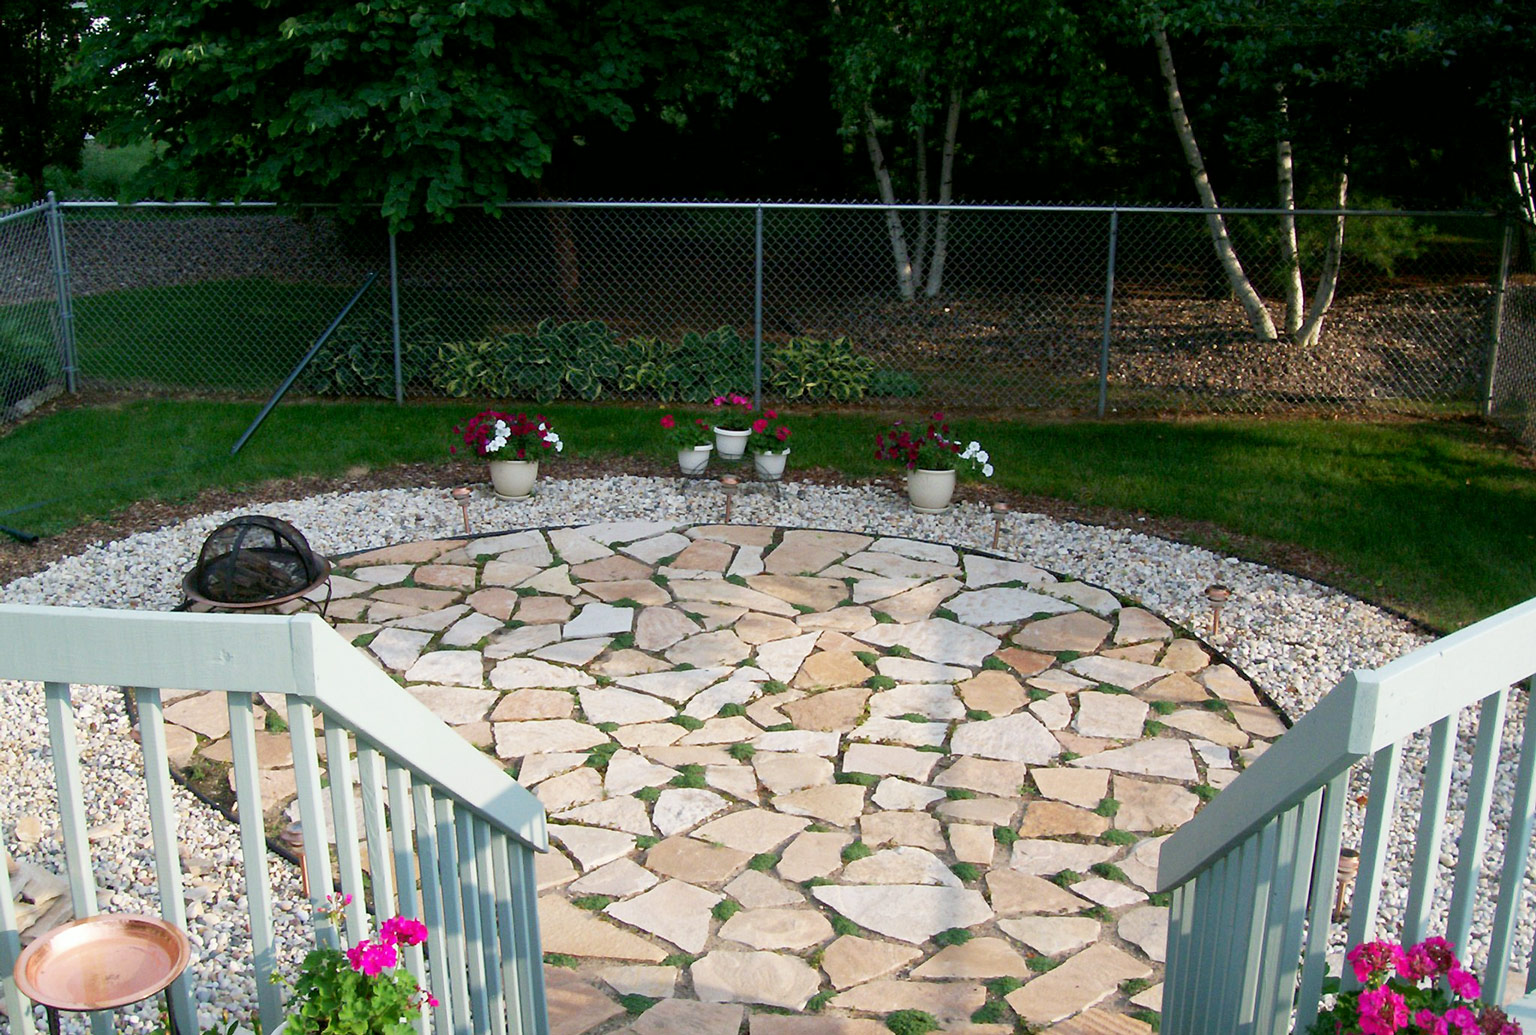 Building A Flagstone Patio : How to build a flagstone patio blain s farm fleet